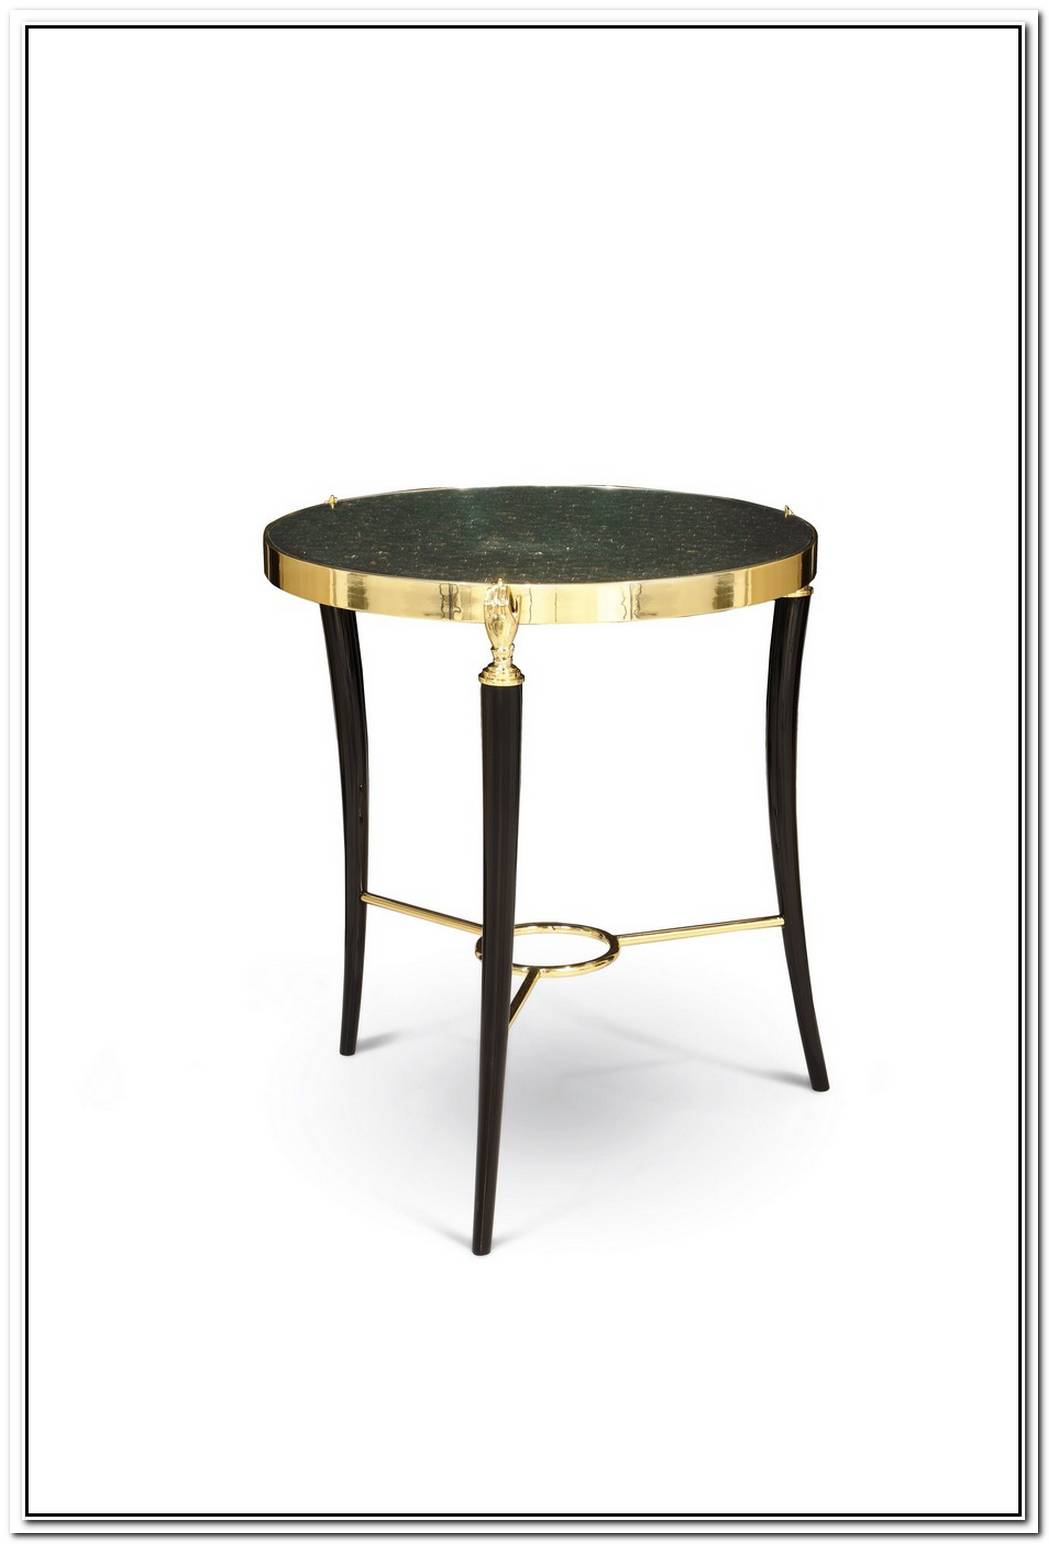 The Delicate Giselle Lounge Table